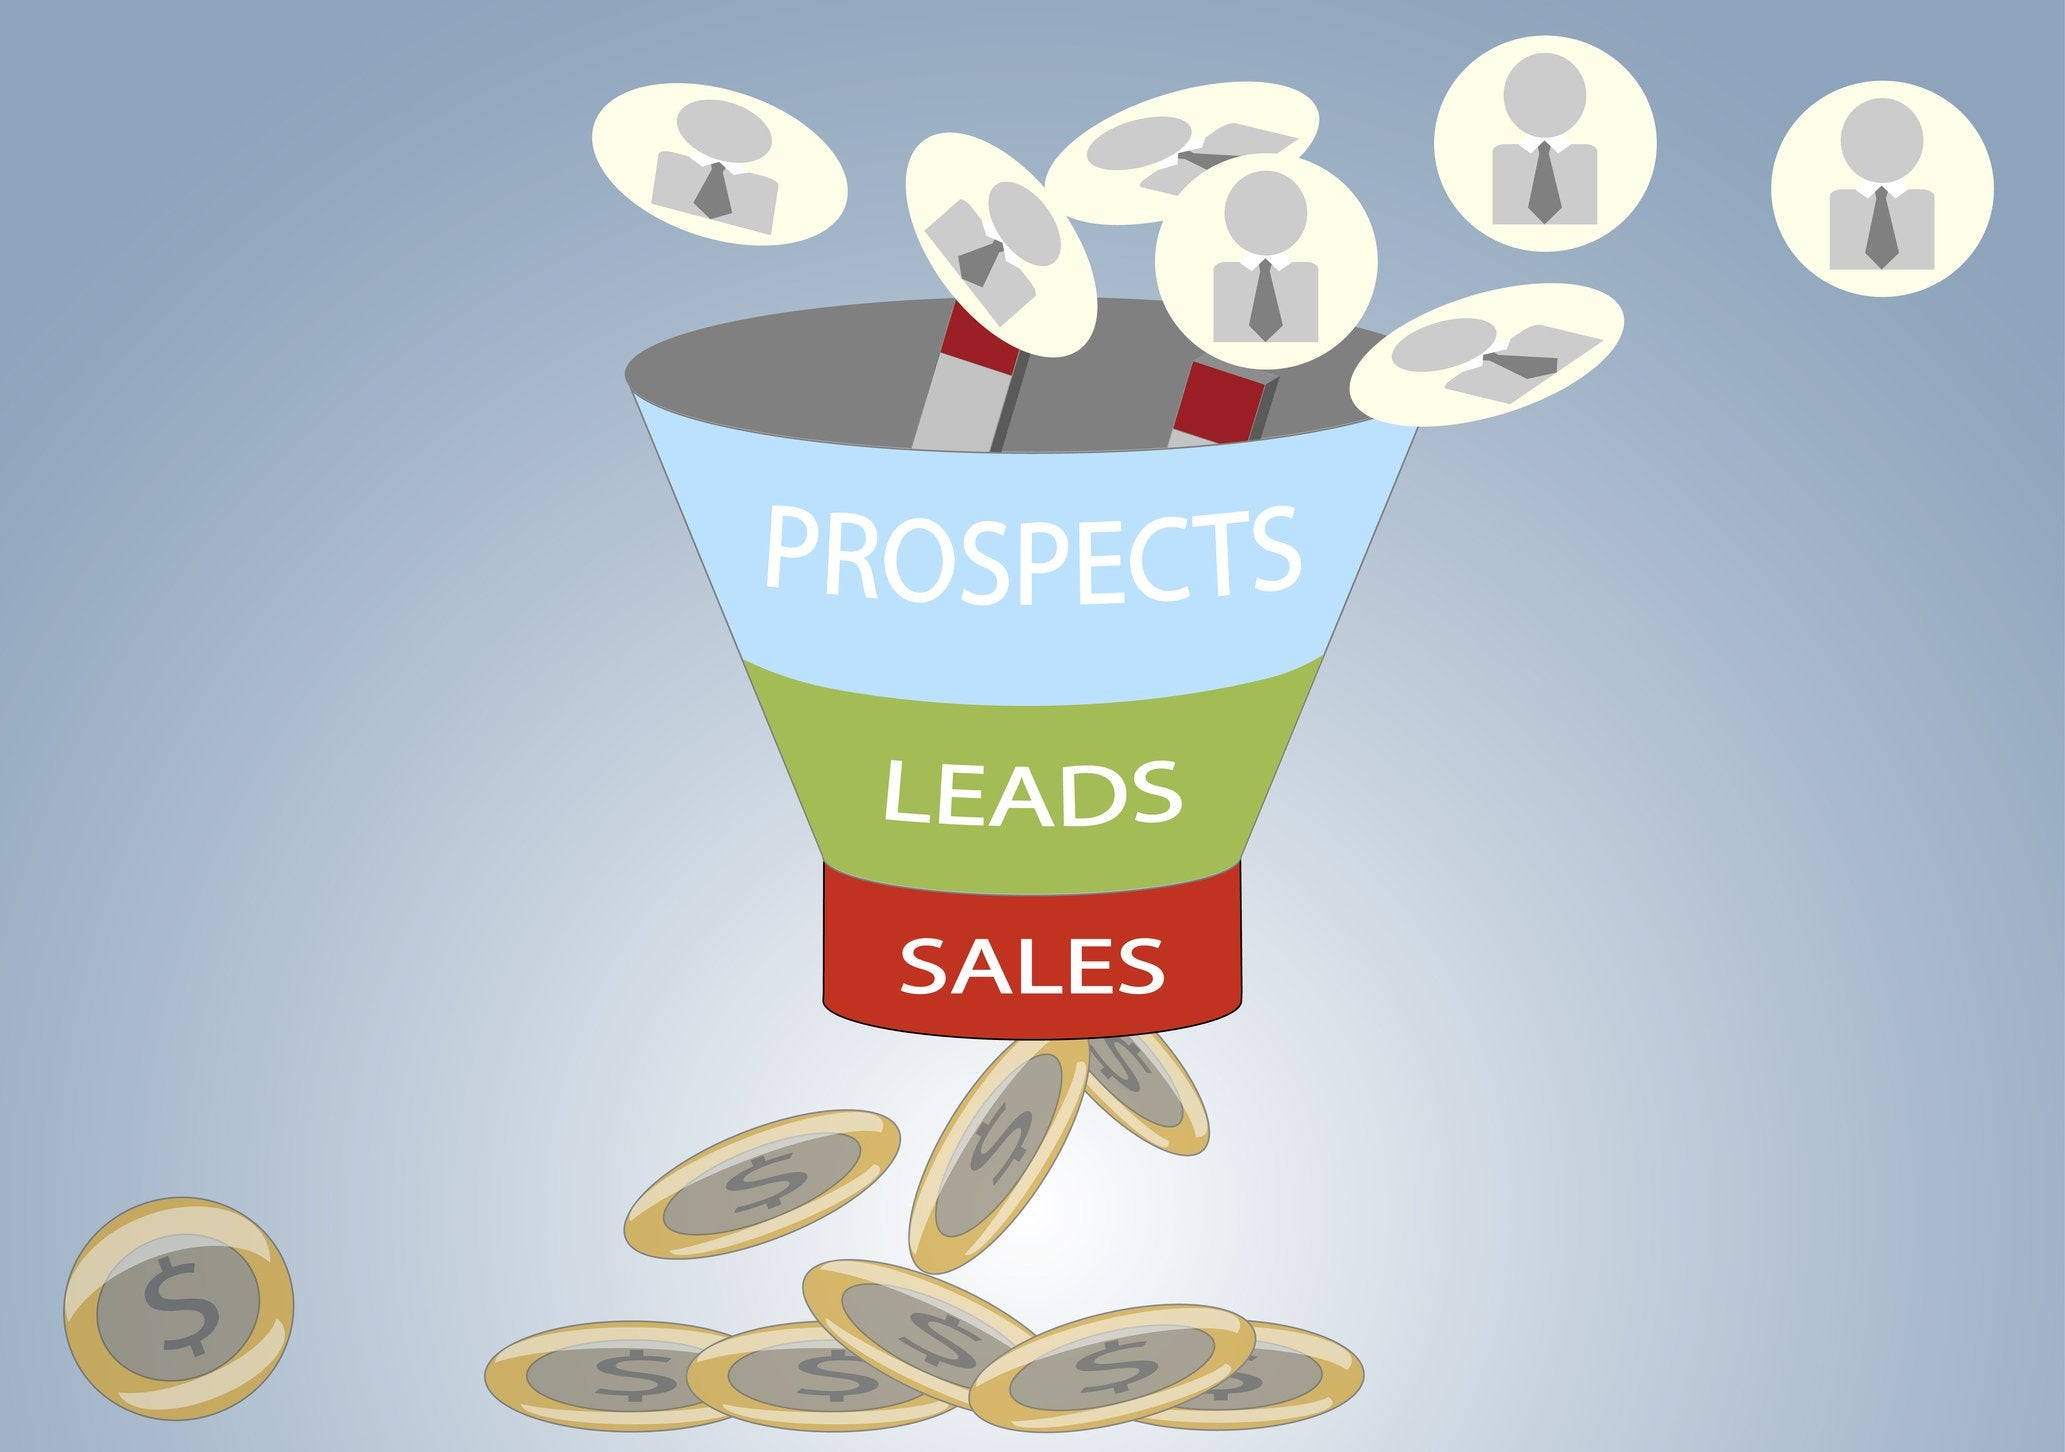 How to Track Lead Status to Maximize Sales